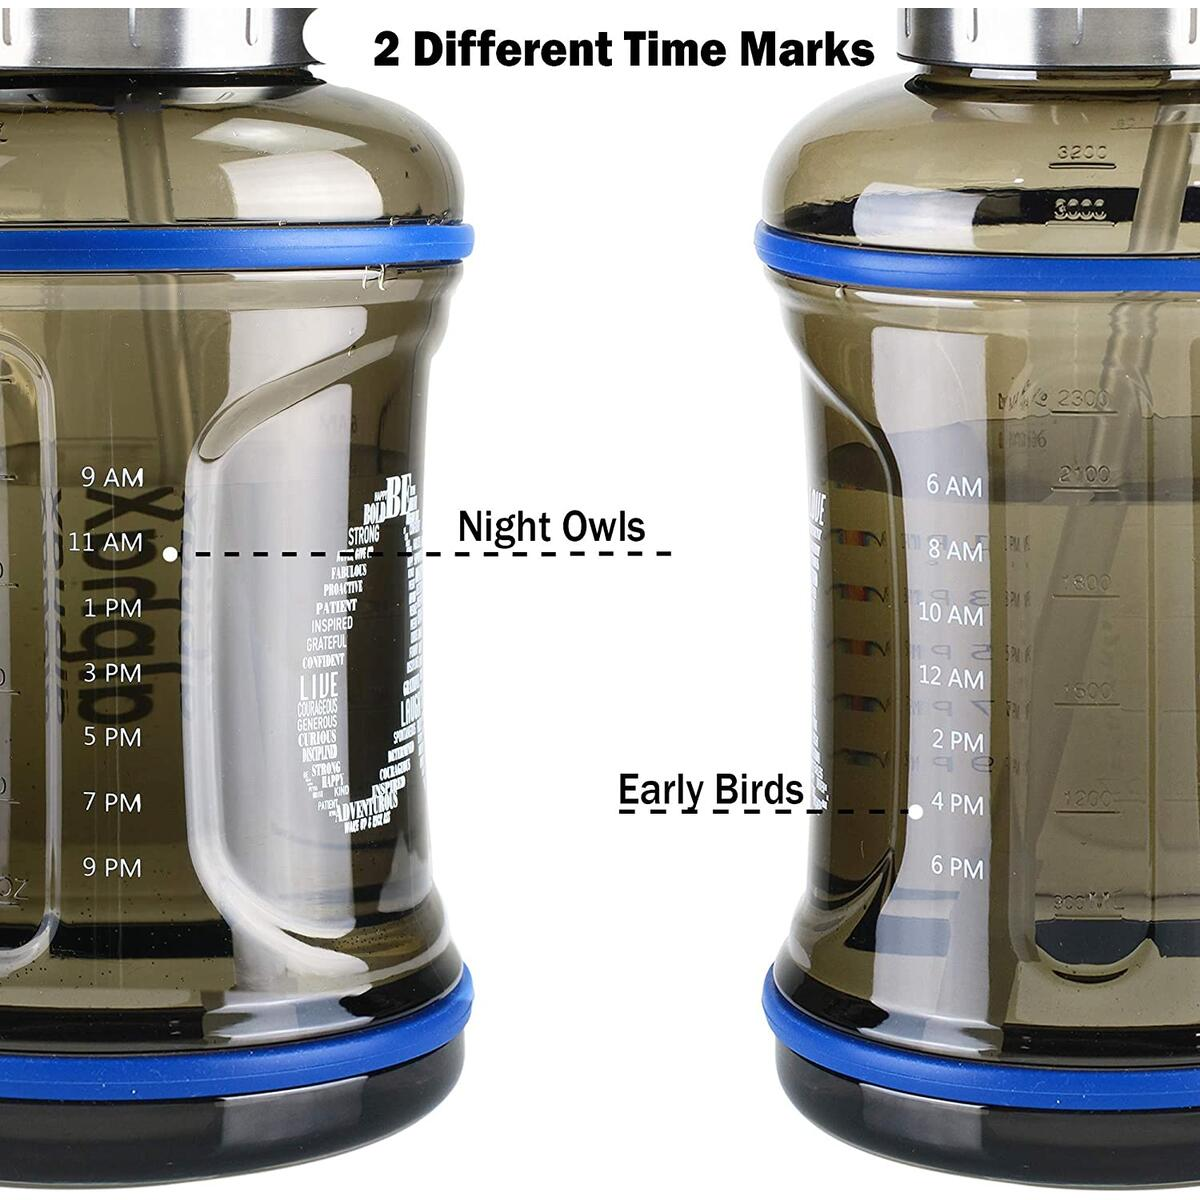 AlphaX Large 108oz/3.2L Daily Water Bottle & Straw, Motivational, Reusable Water Jug with Tracking & Time Marker, Stainless Steel Cap - Fitness, Gym, Office & Outdoor Sports - Available in Three Colors - Offer Cannot be Combined with Any Ongoing Sale